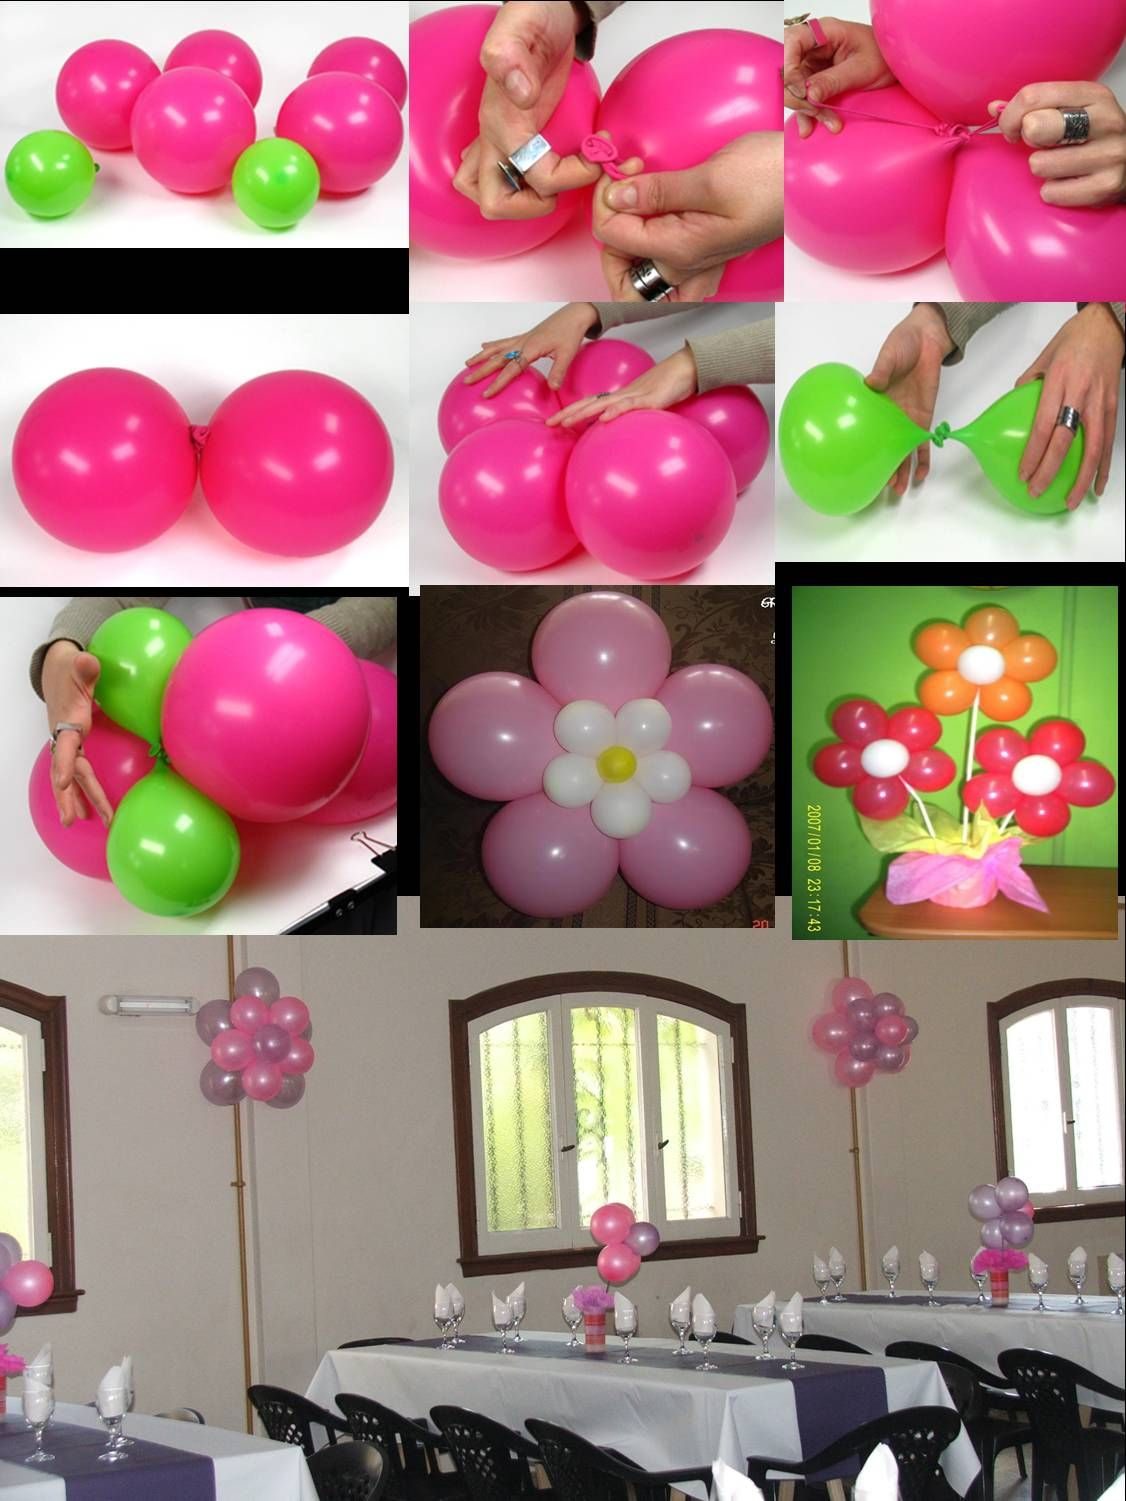 Como decorar un salon de fiestas con flores de globos for Decoracion para spa